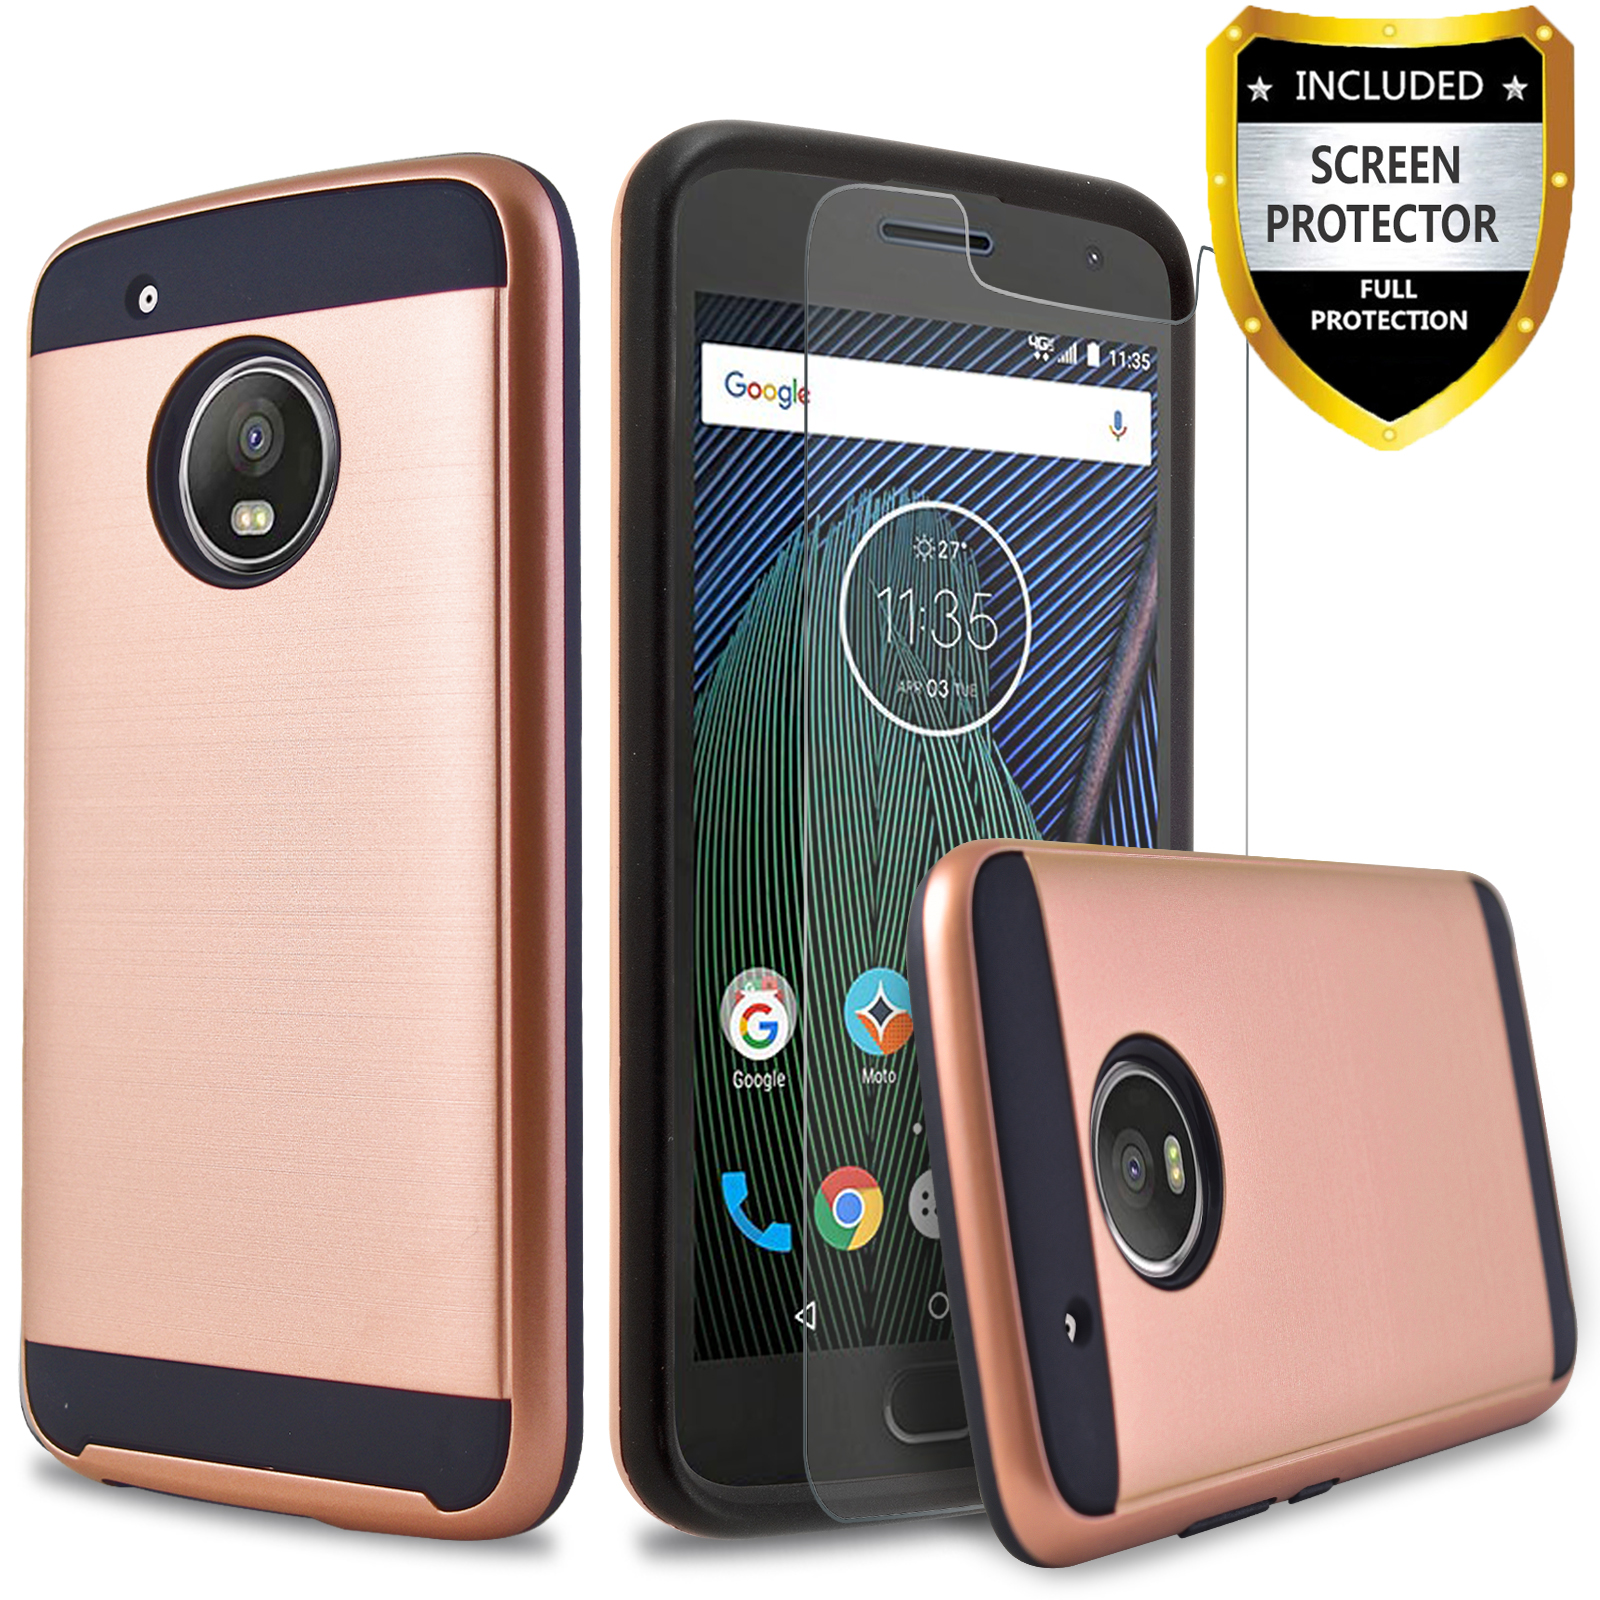 Moto G5 Plus Case, 2-Piece Style Hybrid Shockproof Hard Case Cover with [Premium Screen Protector] Hybird Shockproof And Circlemalls Stylus Pen (Black)